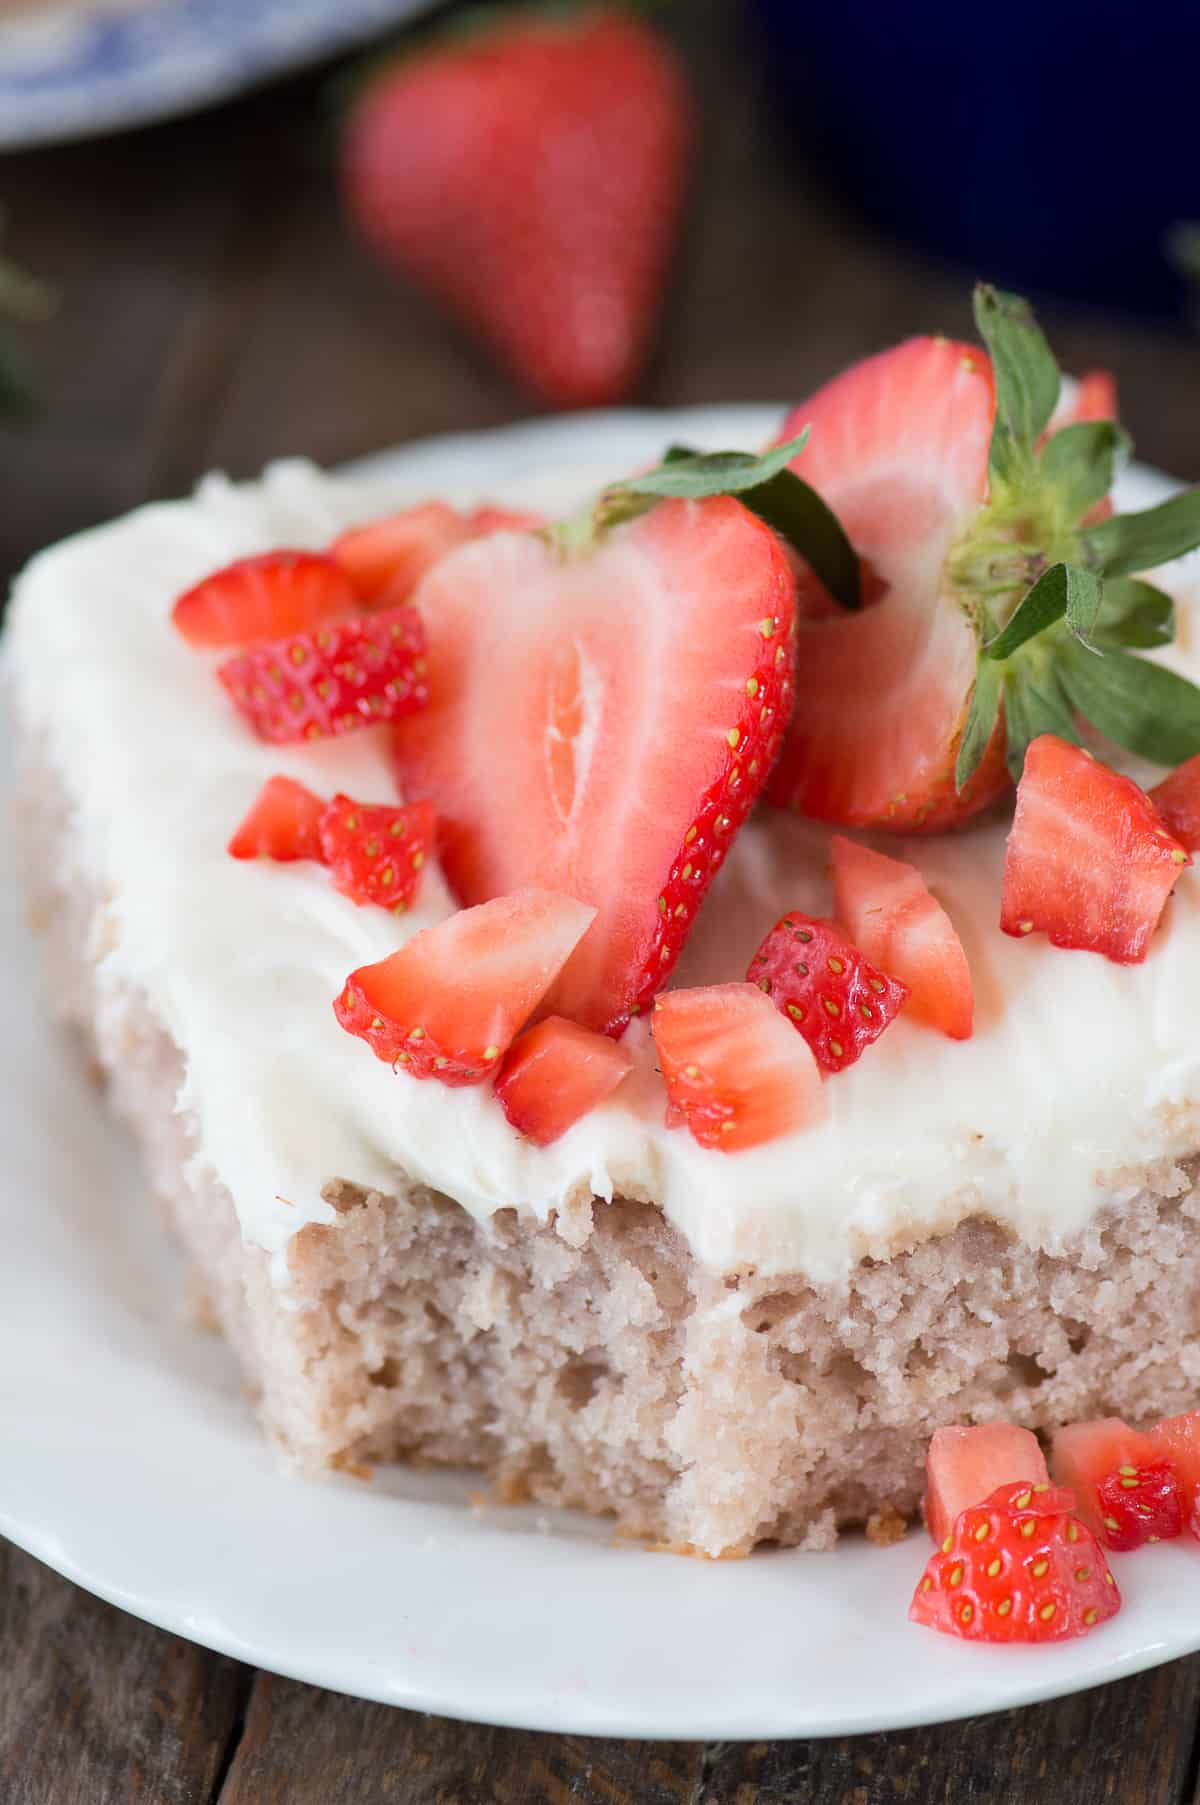 From scratch 9x13 inch fresh strawberry cake with cream cheese frosting! Uses real strawberries and strawberry yogurt.